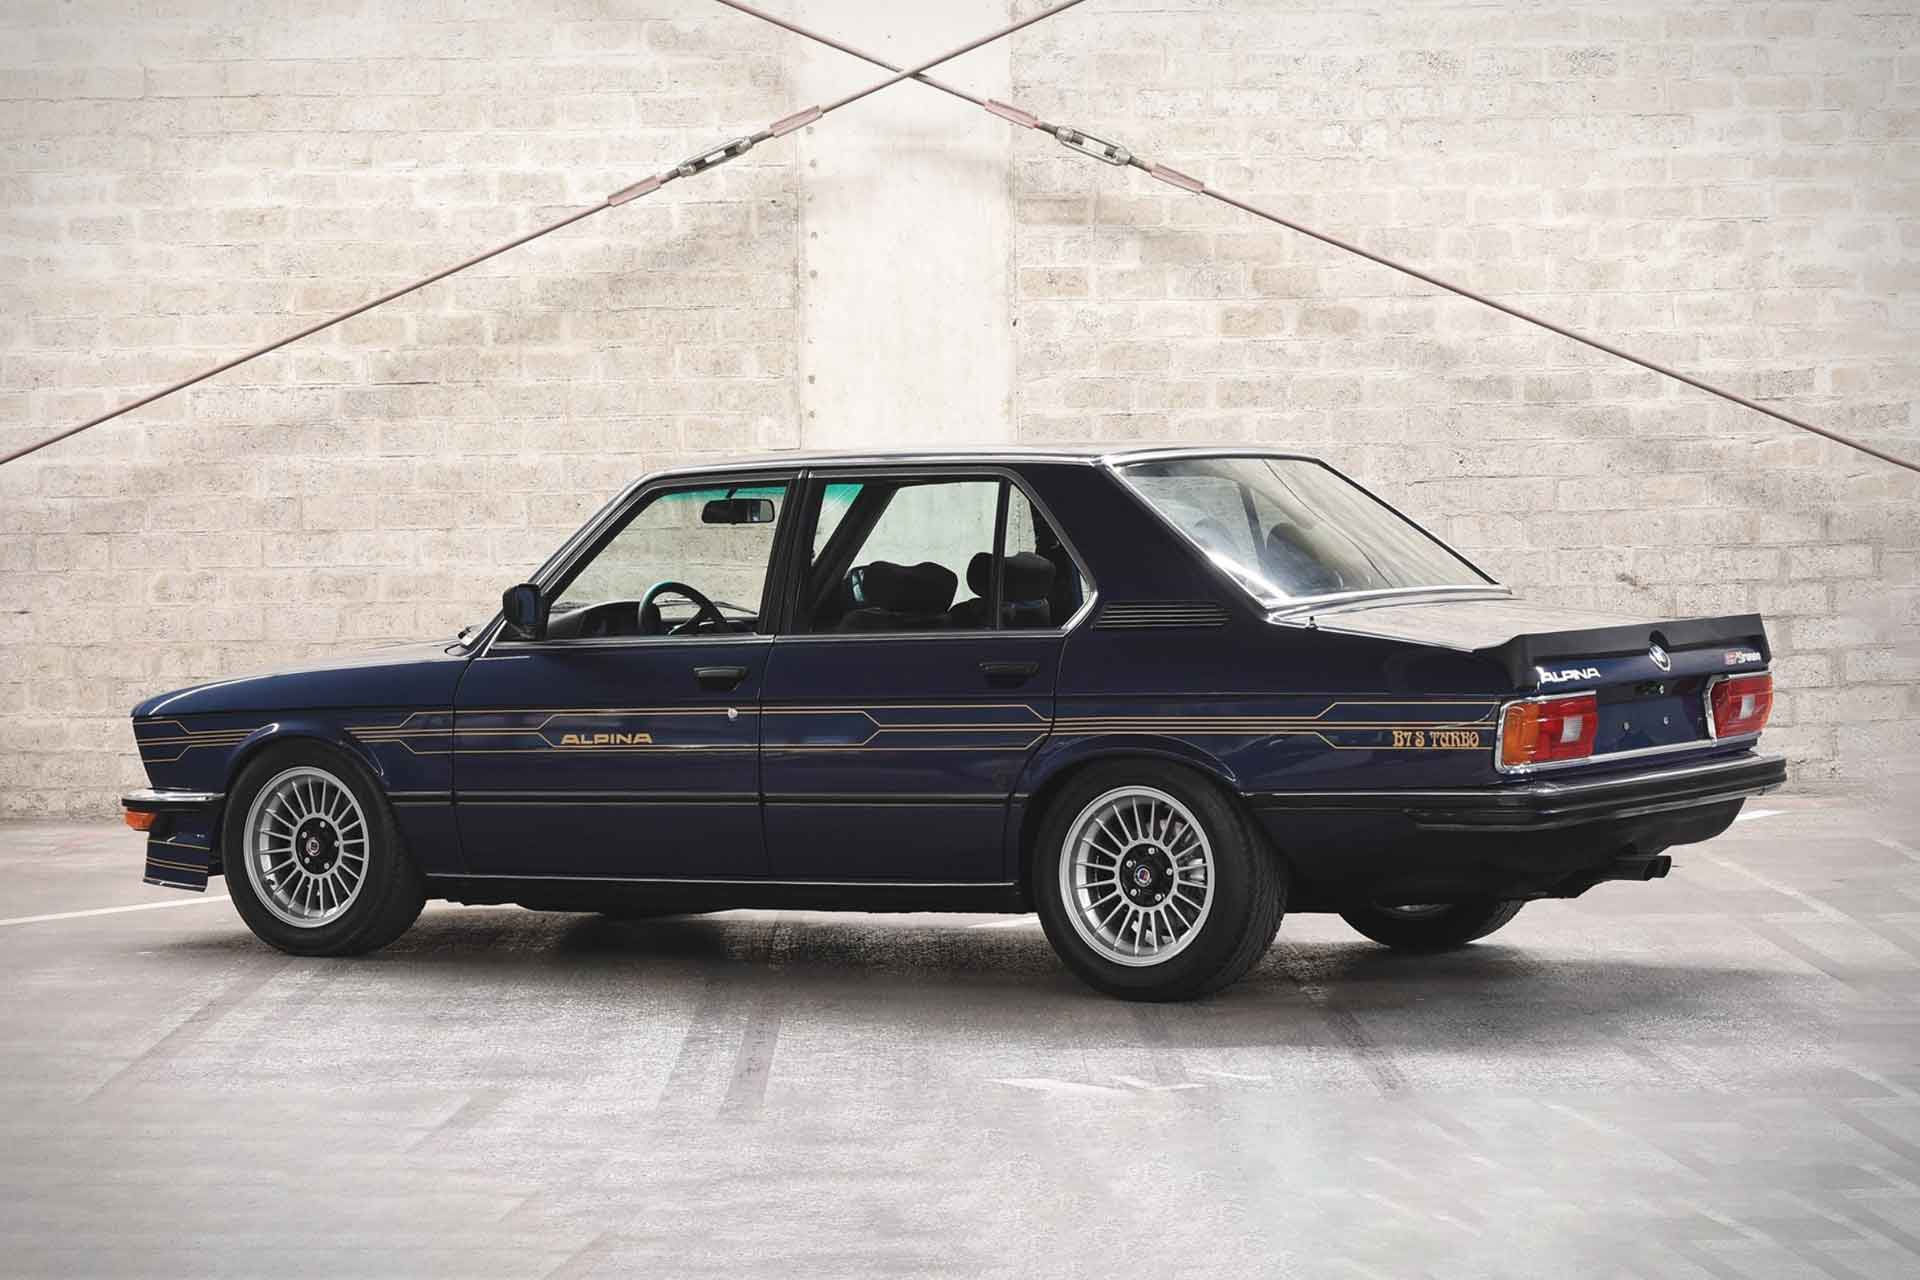 1982 BMW Alpina B7 S Turbo